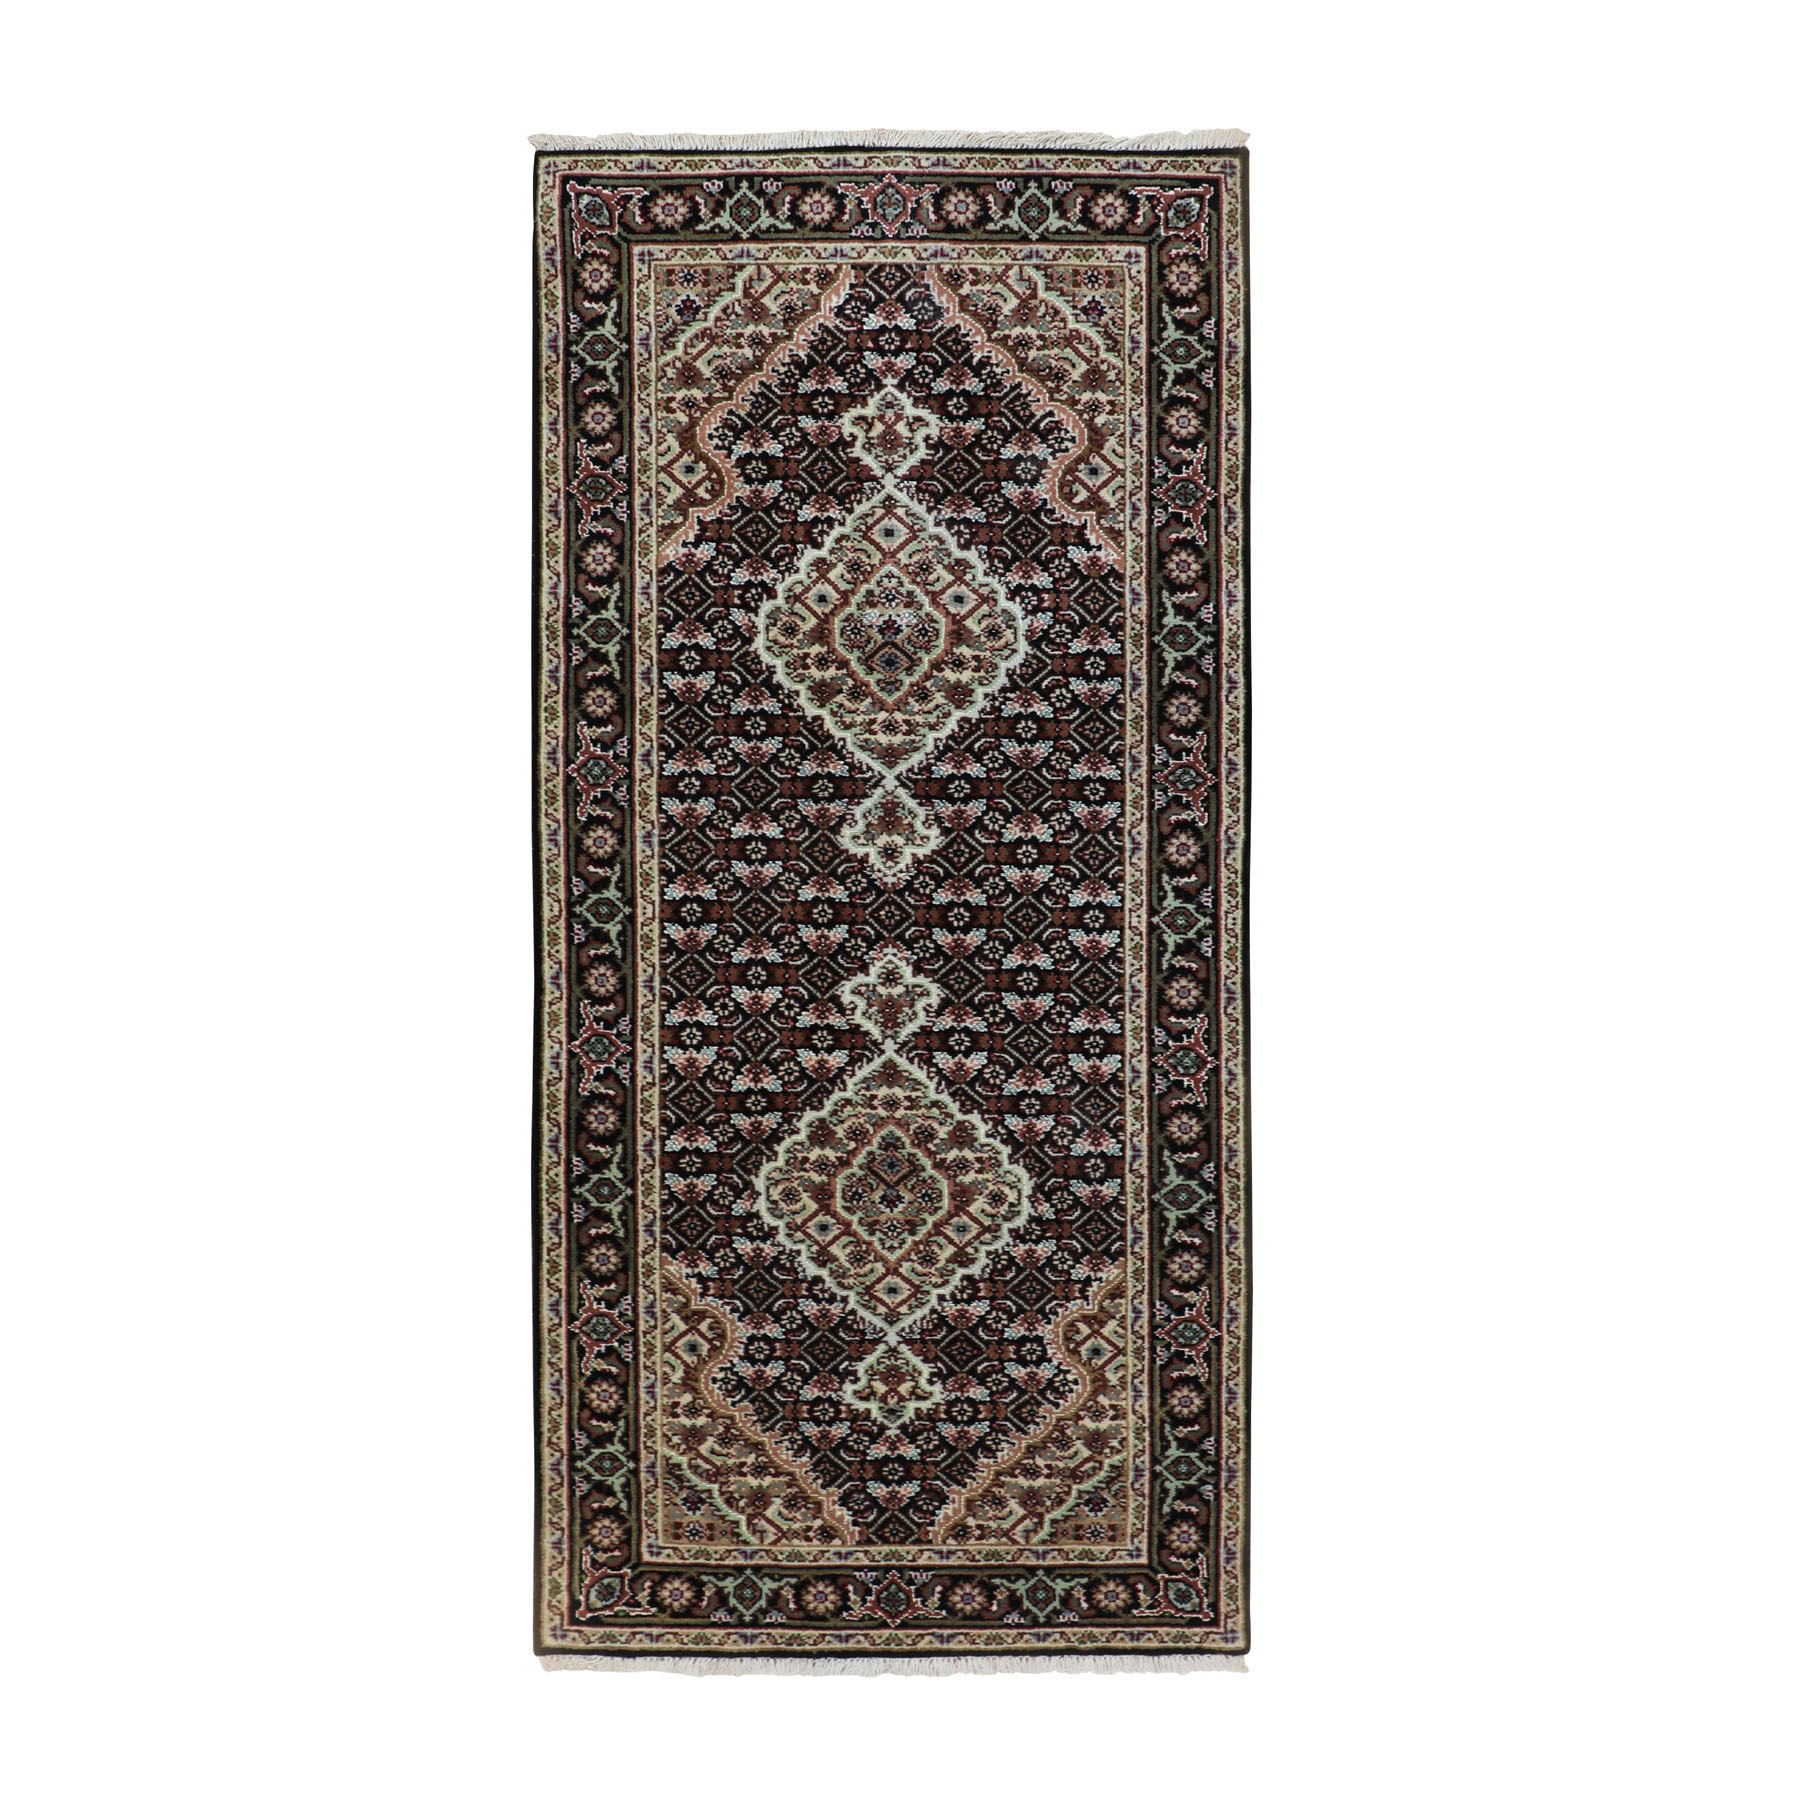 "2'8""x6'1"" Black Tabriz Mahi Fish Design Wool And Silk Runner Hand Woven Oriental Rug"